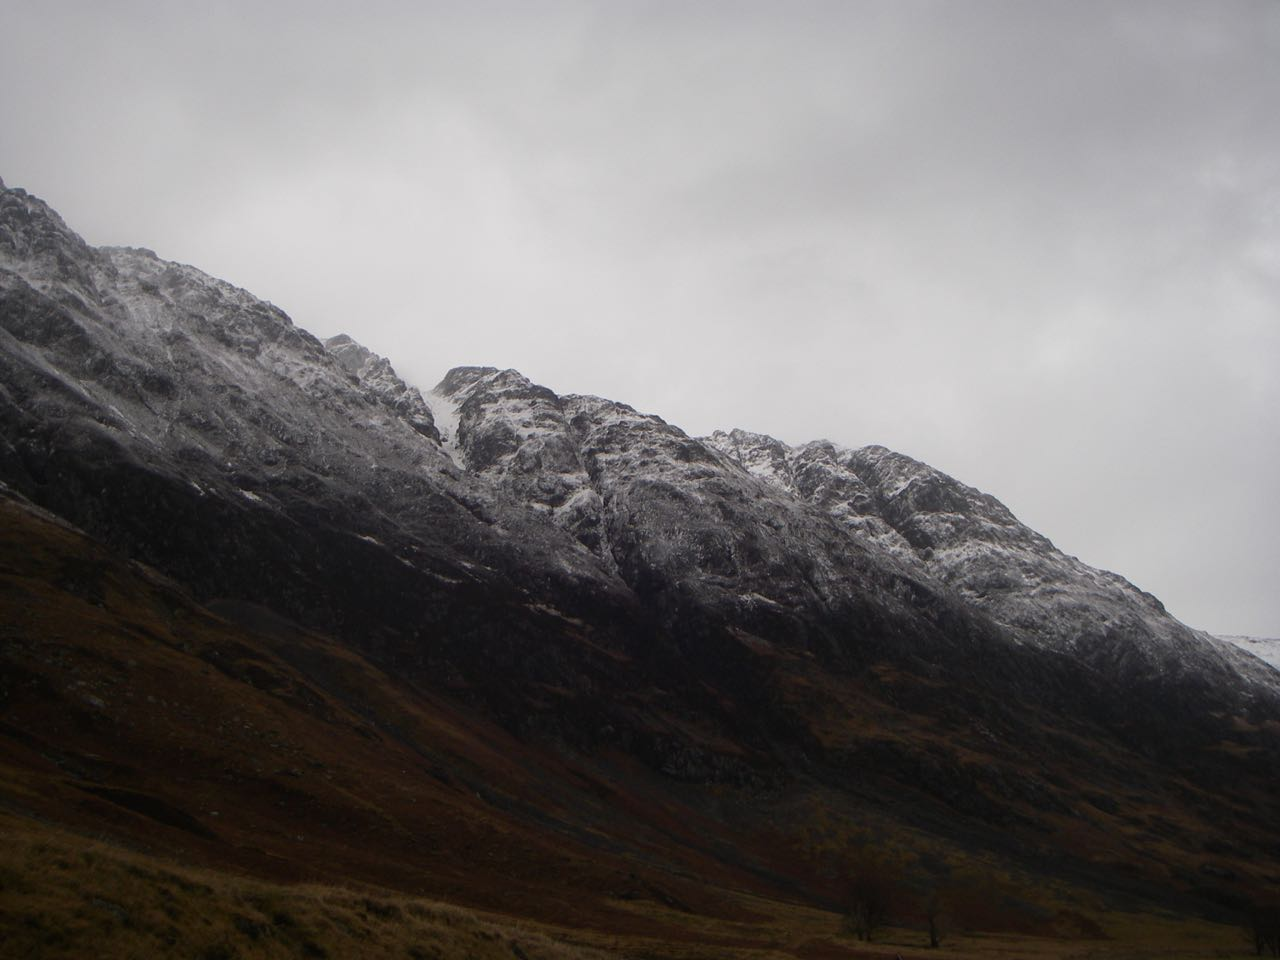 The South flank of the Aonach Eagach had lost some snow cover